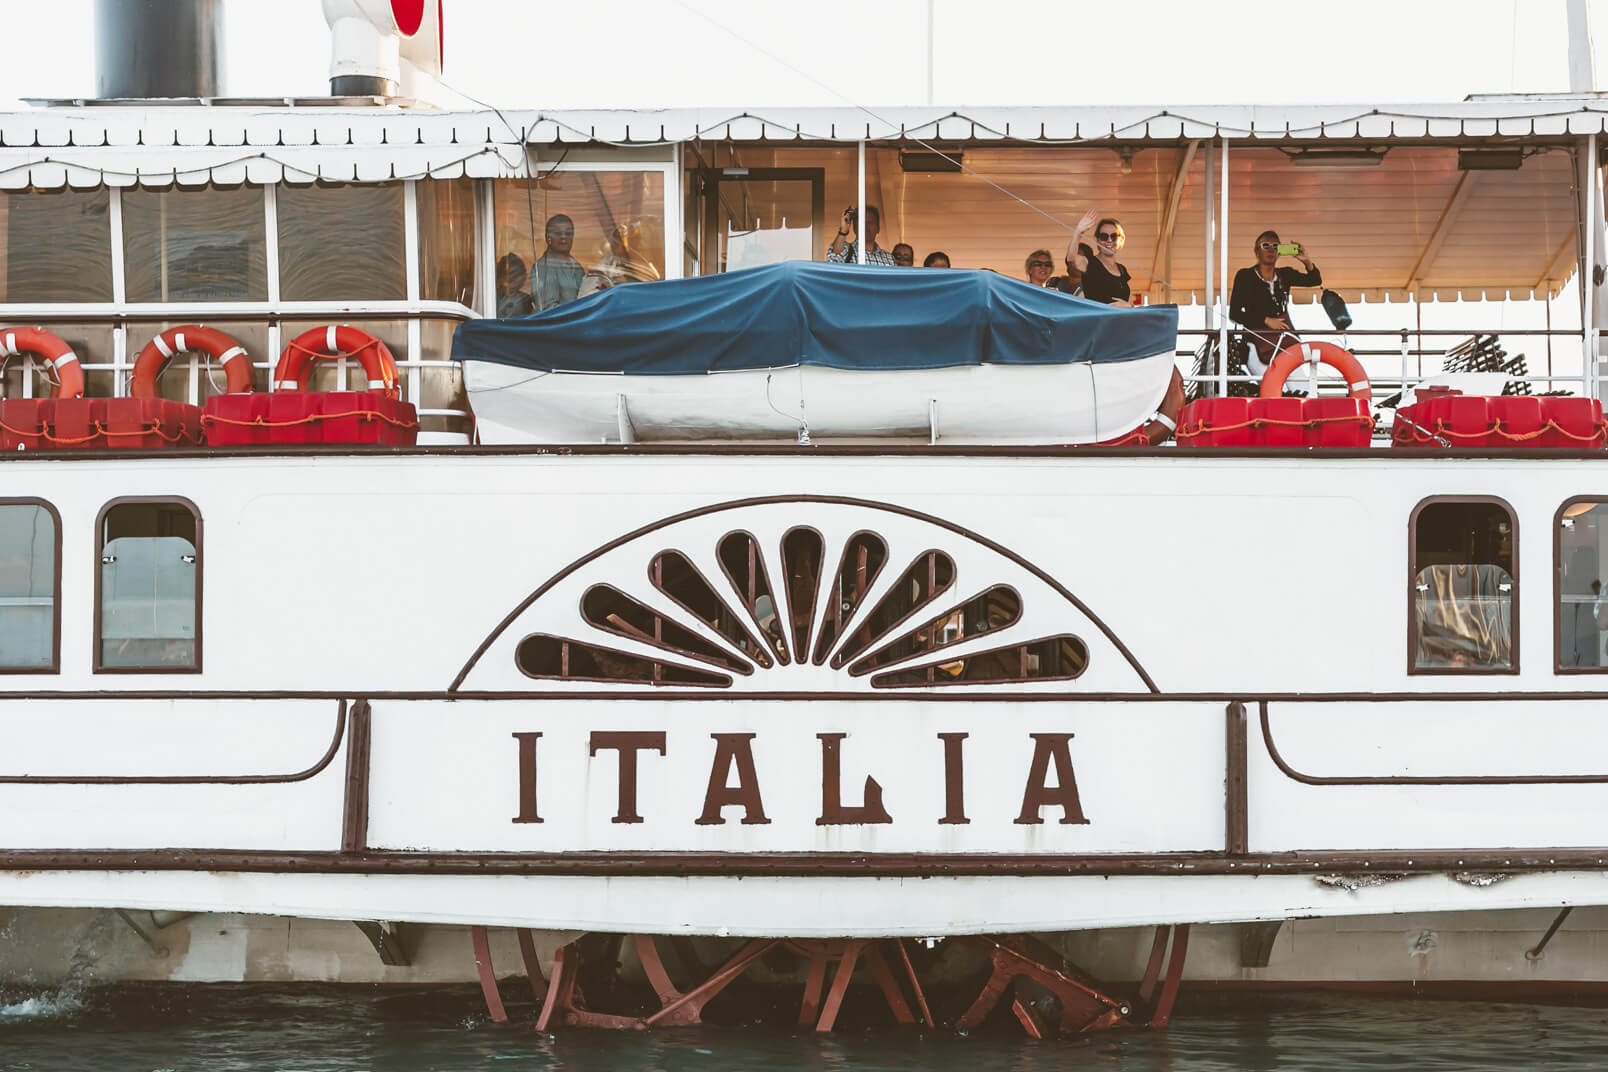 Italia, the vintage boat on Lake Garda.